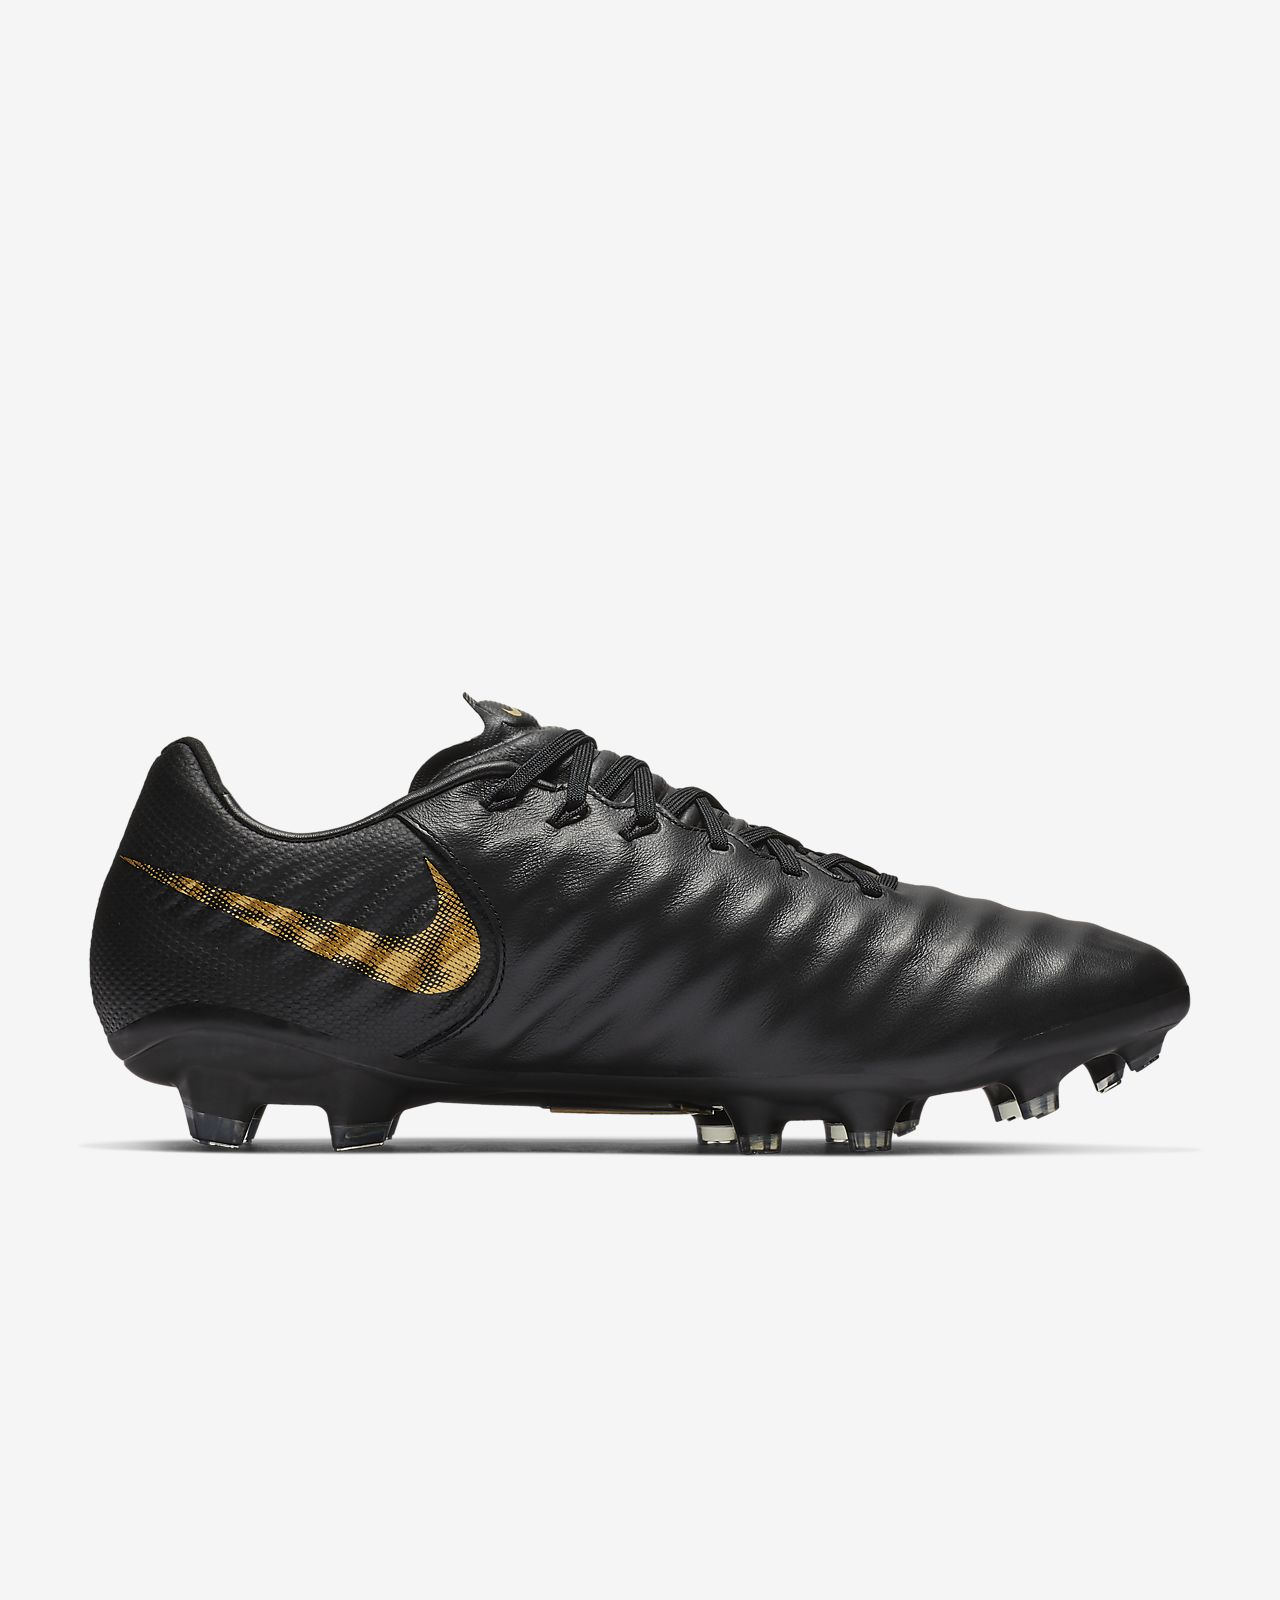 47052cfff Nike Tiempo Legend 7 Pro CA FG Firm-Ground Soccer Cleat. Nike.com